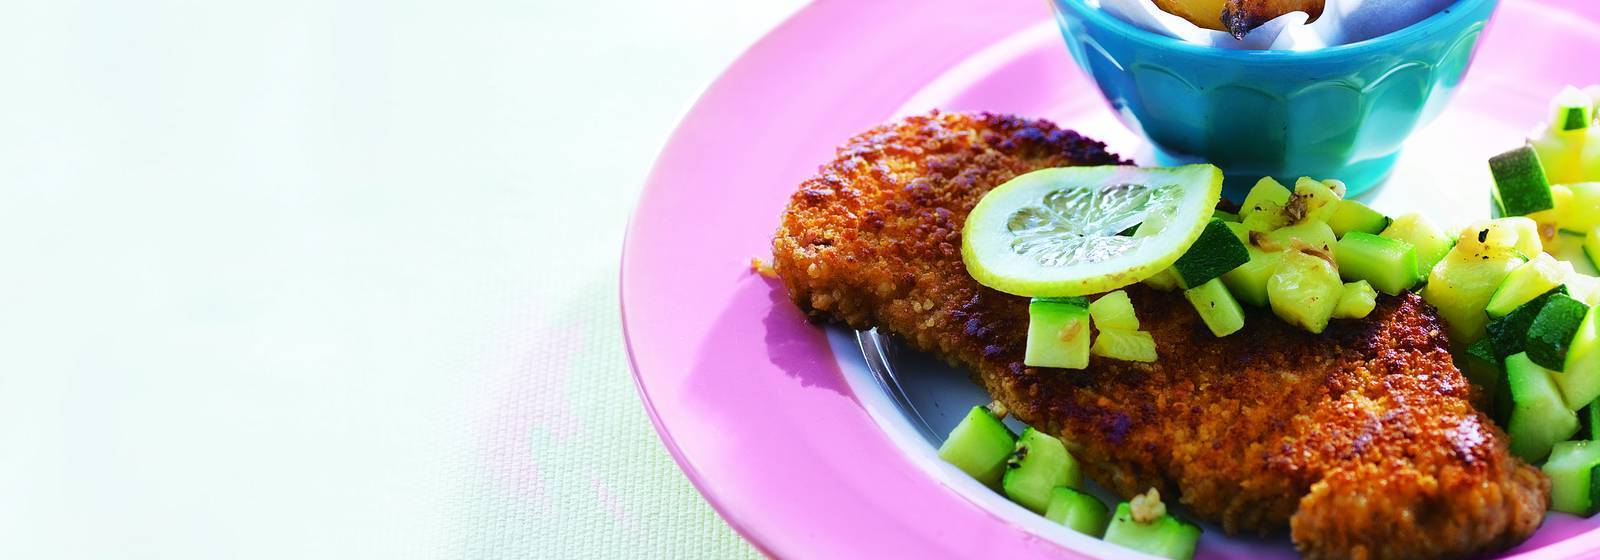 Schnitzel, lemon and zucchini